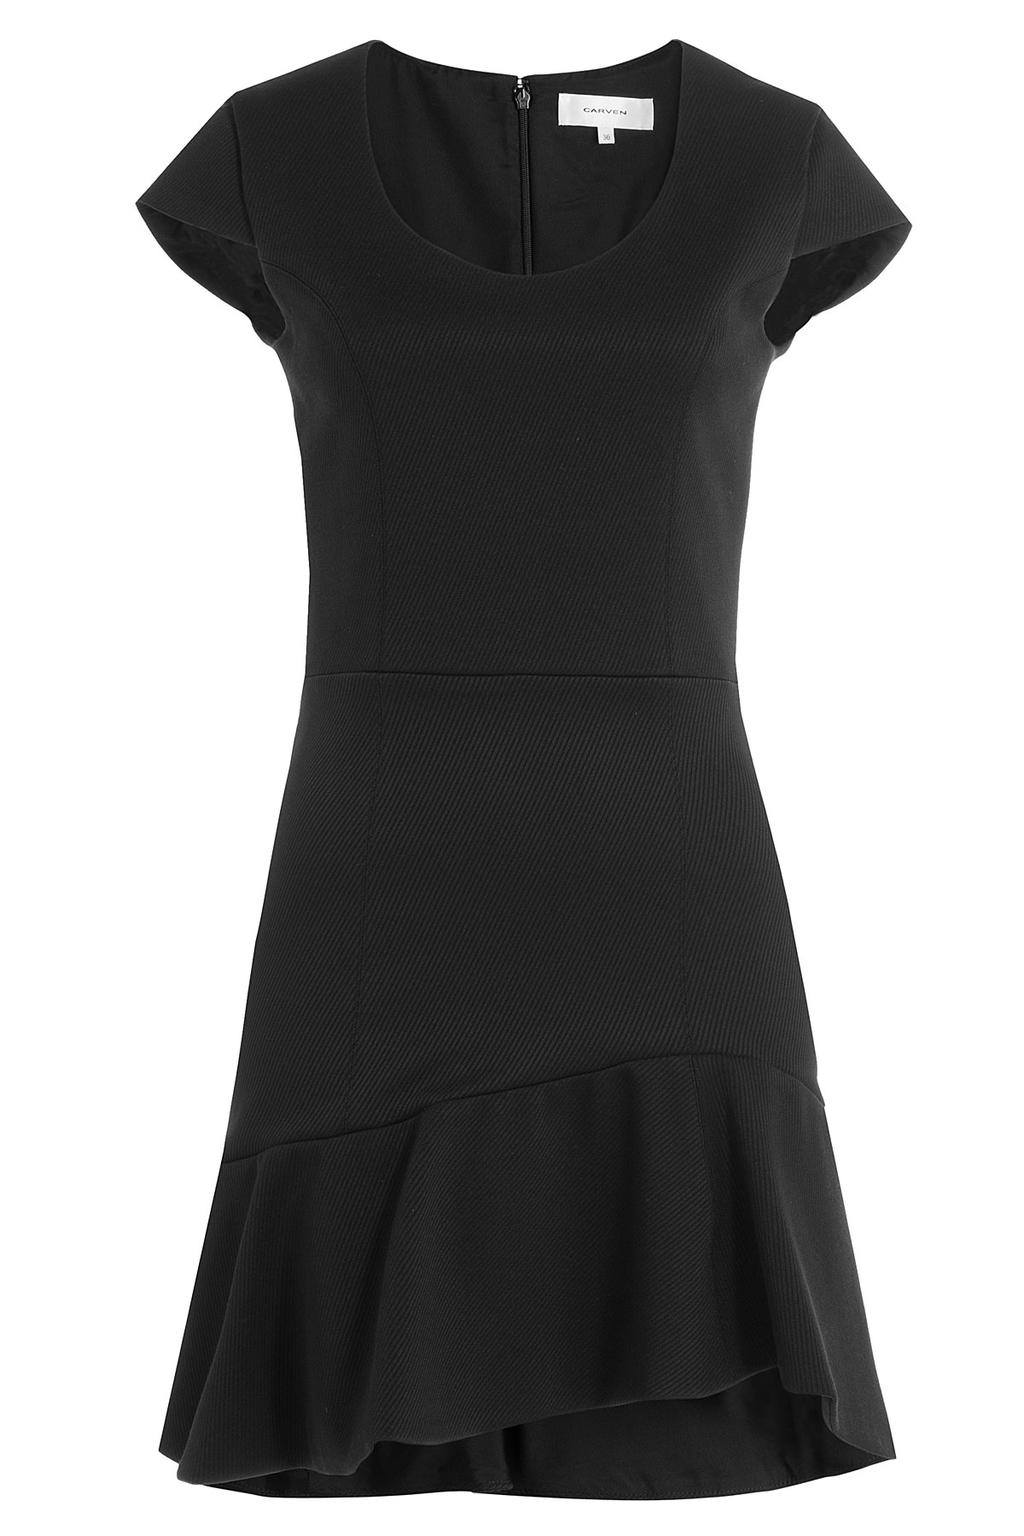 Dress With Ruffled Skirt - neckline: round neck; pattern: plain; predominant colour: black; occasions: evening; length: just above the knee; fit: fitted at waist & bust; style: fit & flare; fibres: polyester/polyamide - stretch; sleeve length: short sleeve; sleeve style: standard; pattern type: fabric; texture group: jersey - stretchy/drapey; season: a/w 2016; wardrobe: event